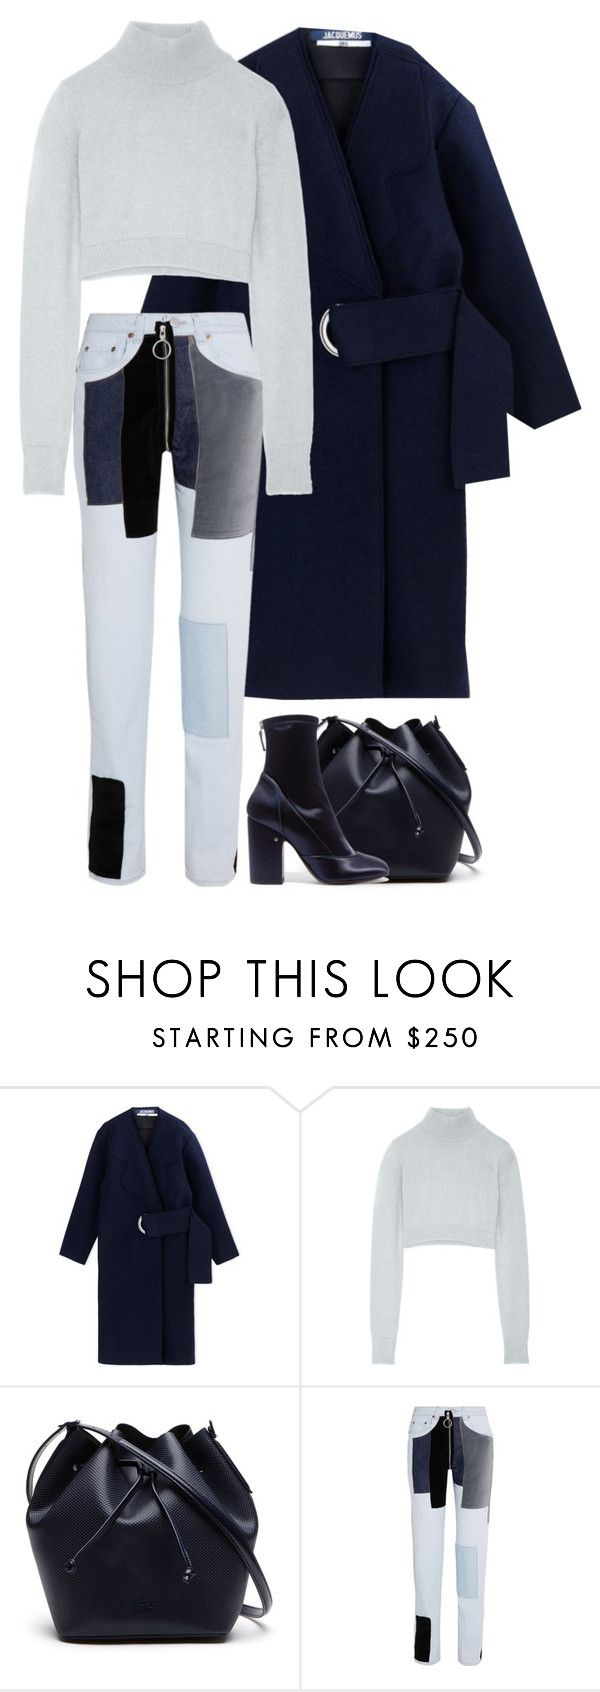 """""""Untitled #1300"""" by bettinakhrn ❤ liked on Polyvore featuring Jacquemus, Balmain, Lacoste, Off-White and Laurence Dacade"""